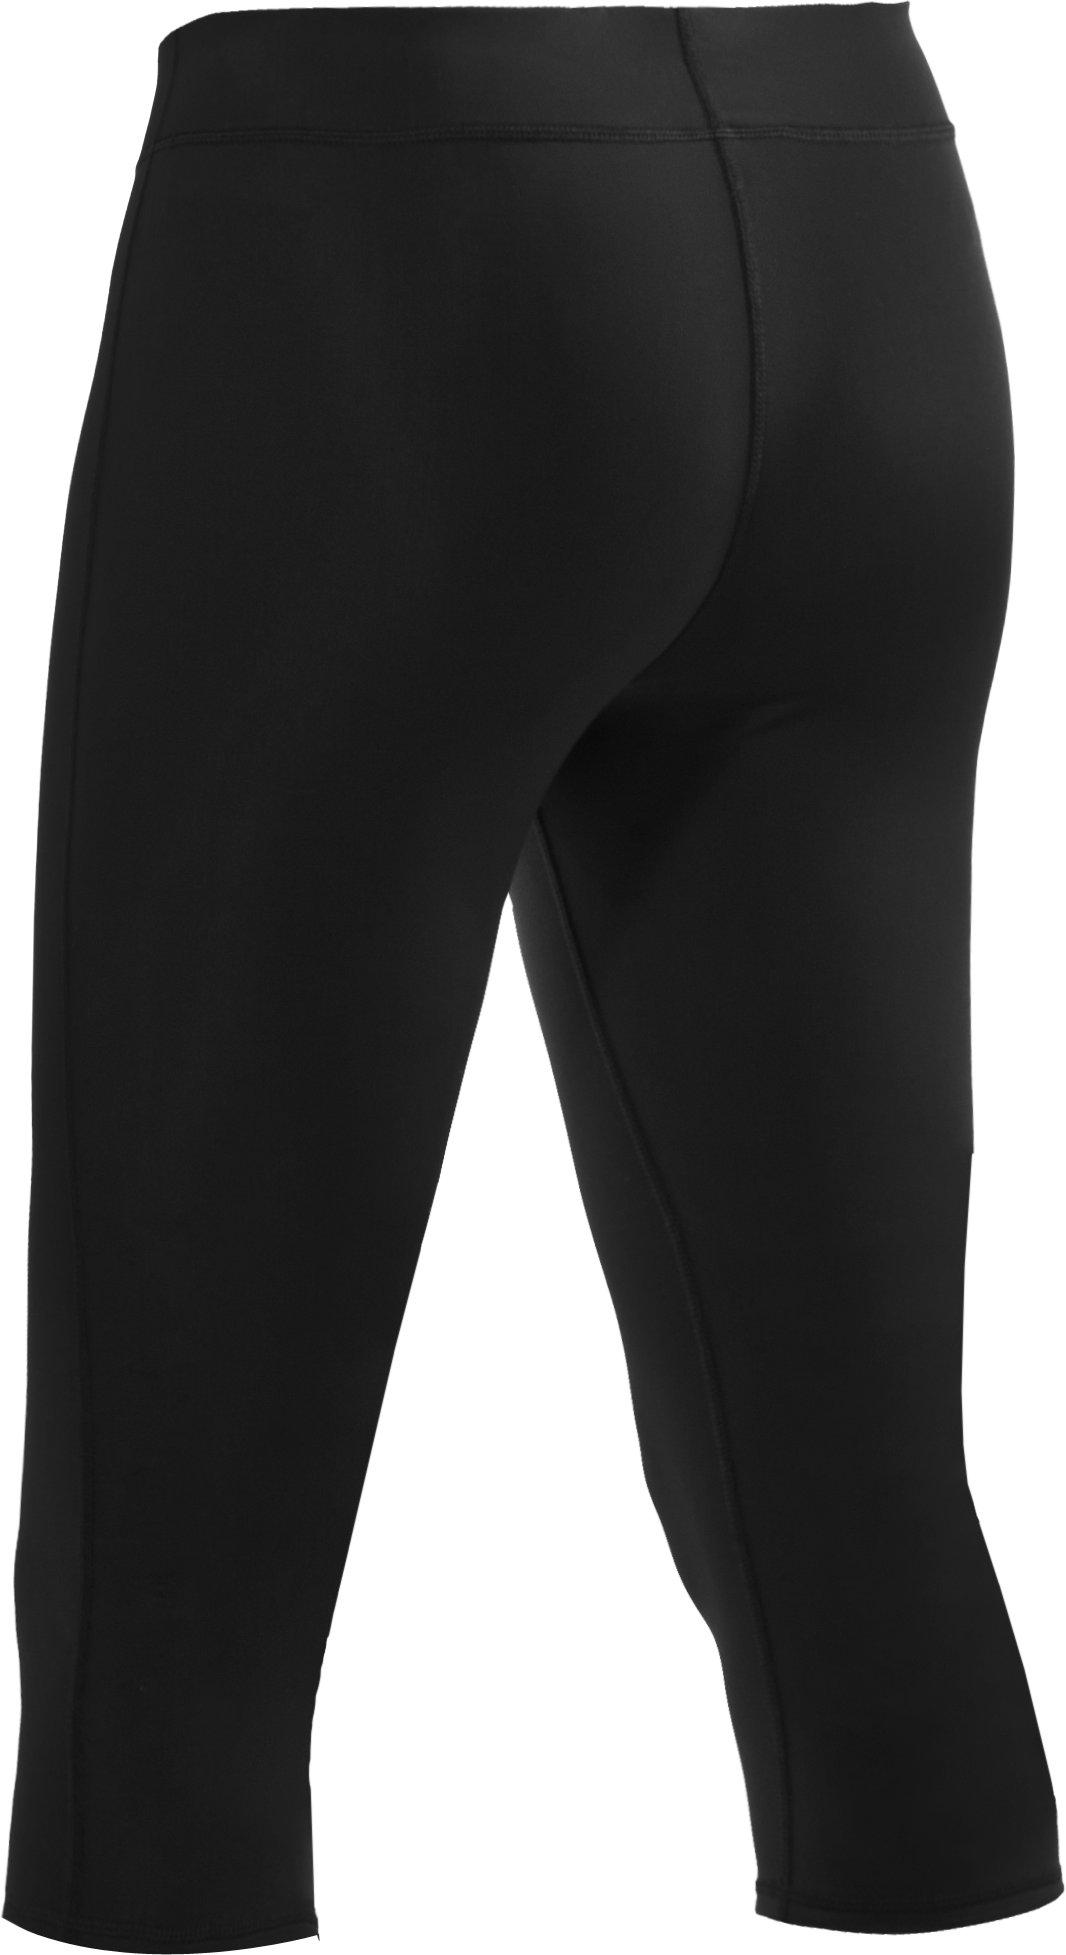 "Women's HeatGear® Squat 15"" Capri, Carbon Heather, undefined"